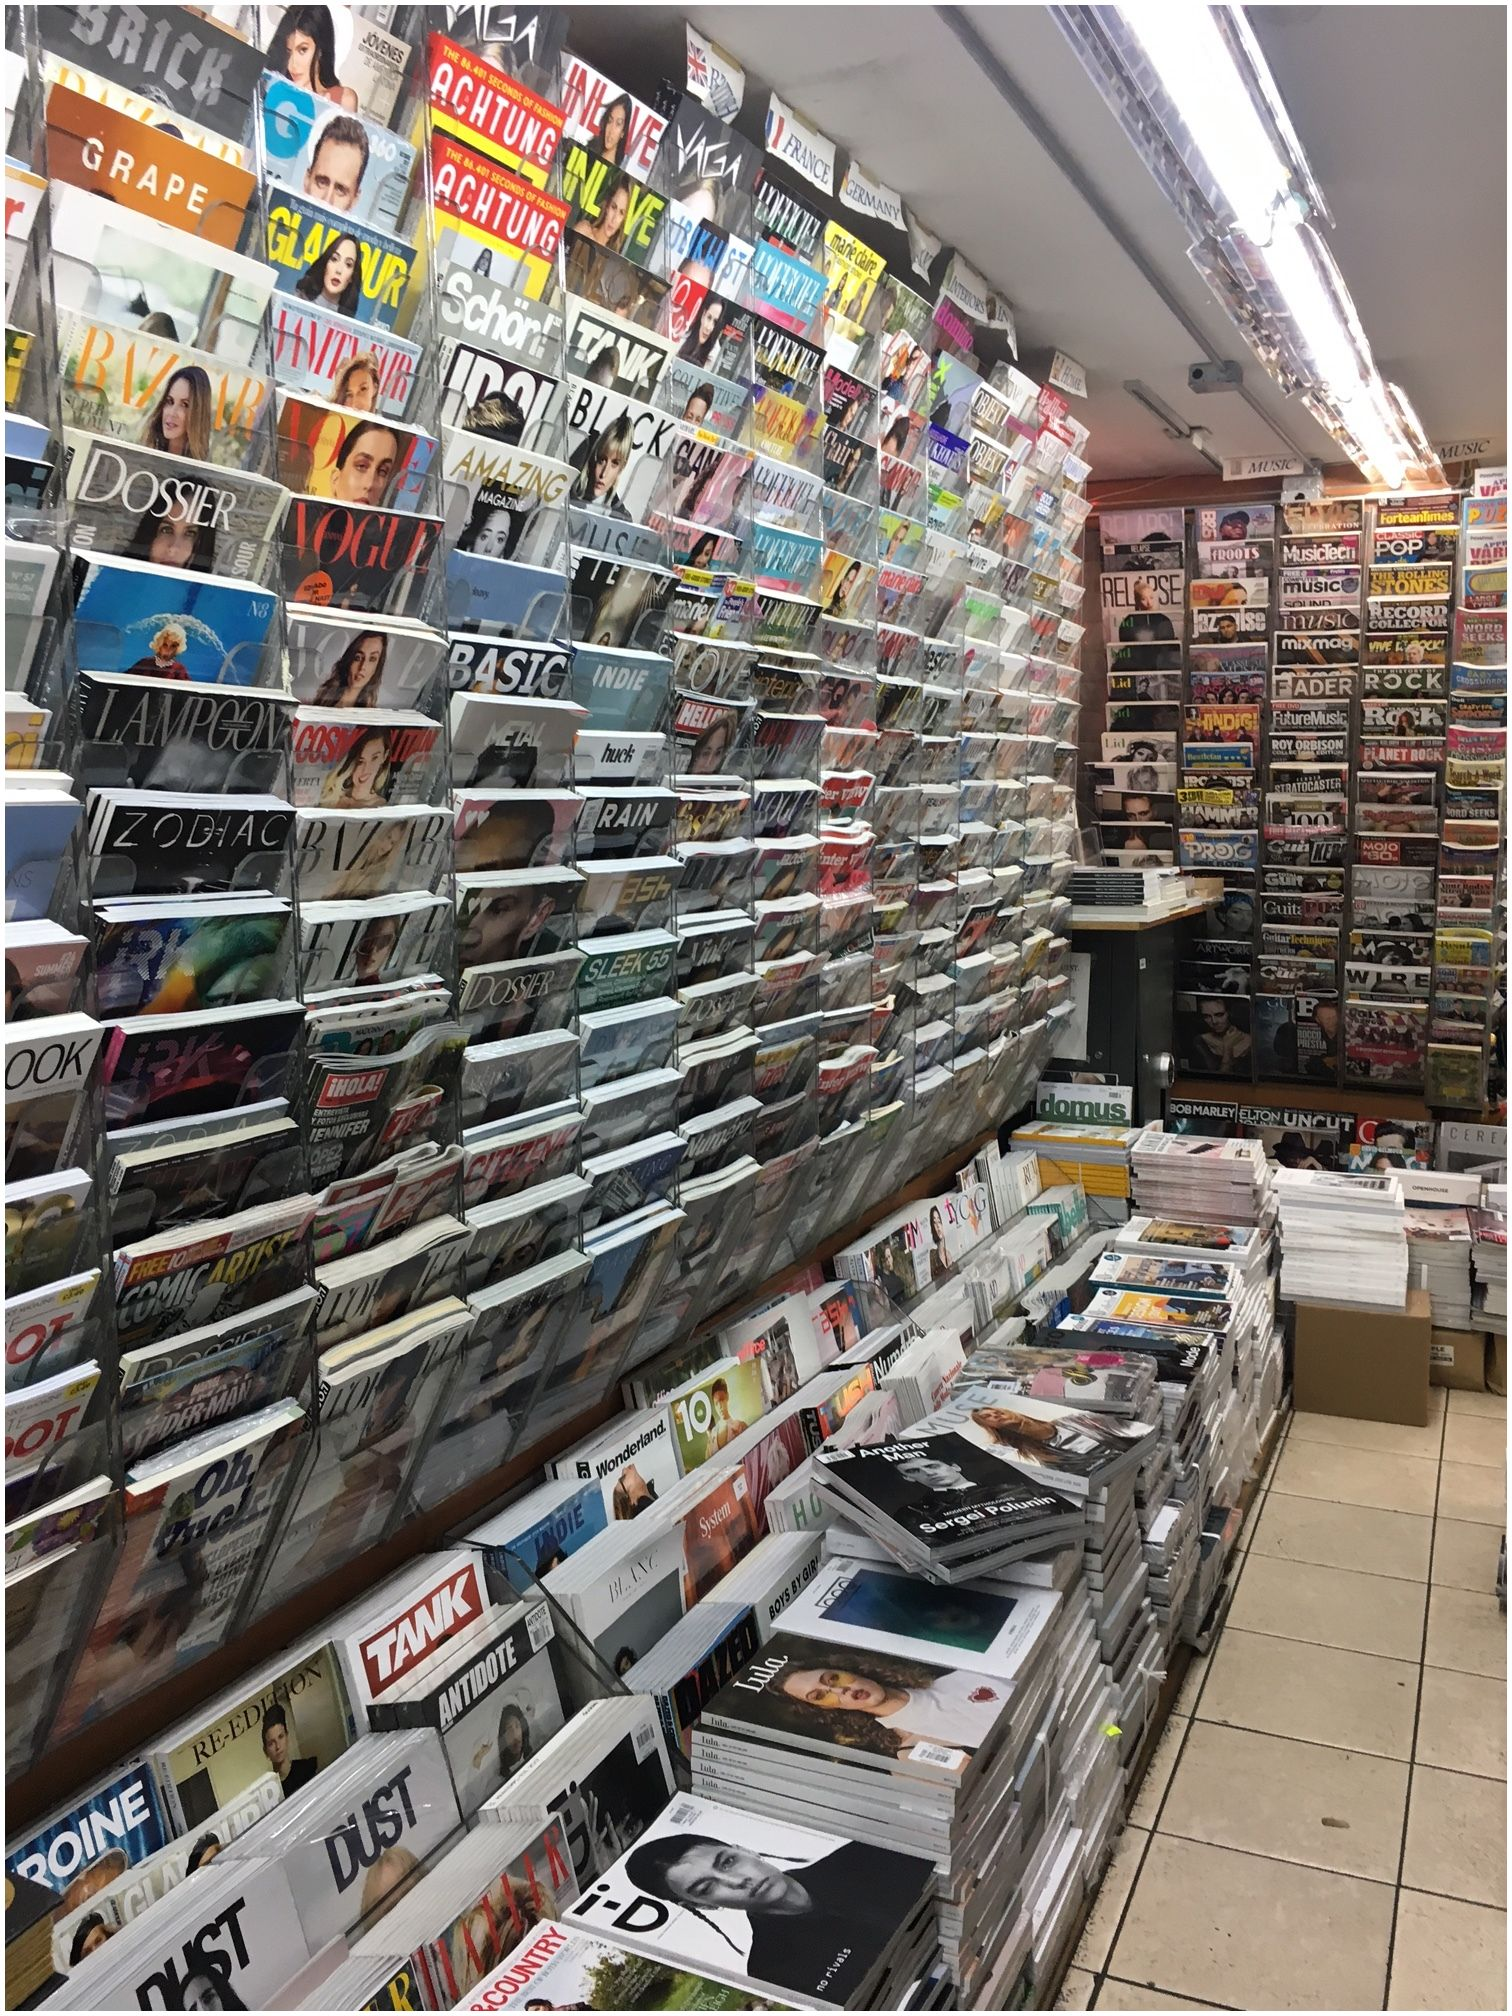 For Magazine Lovers in NYC